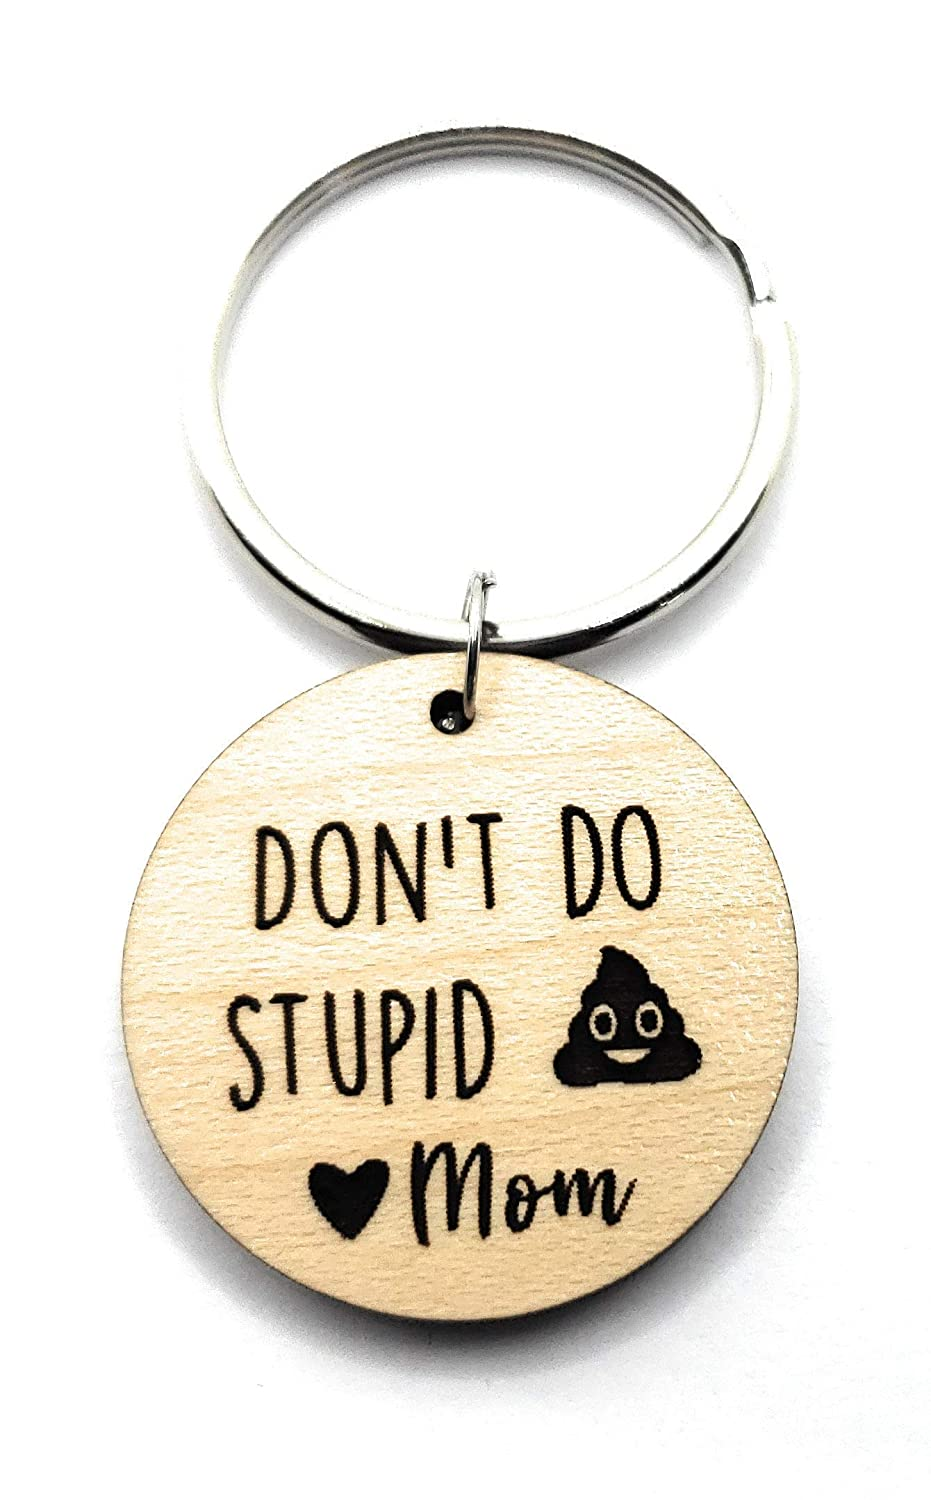 Don/'t Do Stupid Sh*t Poop Love Mom or other Name or Title Personalized Custom Key Chain Engraved ROUND